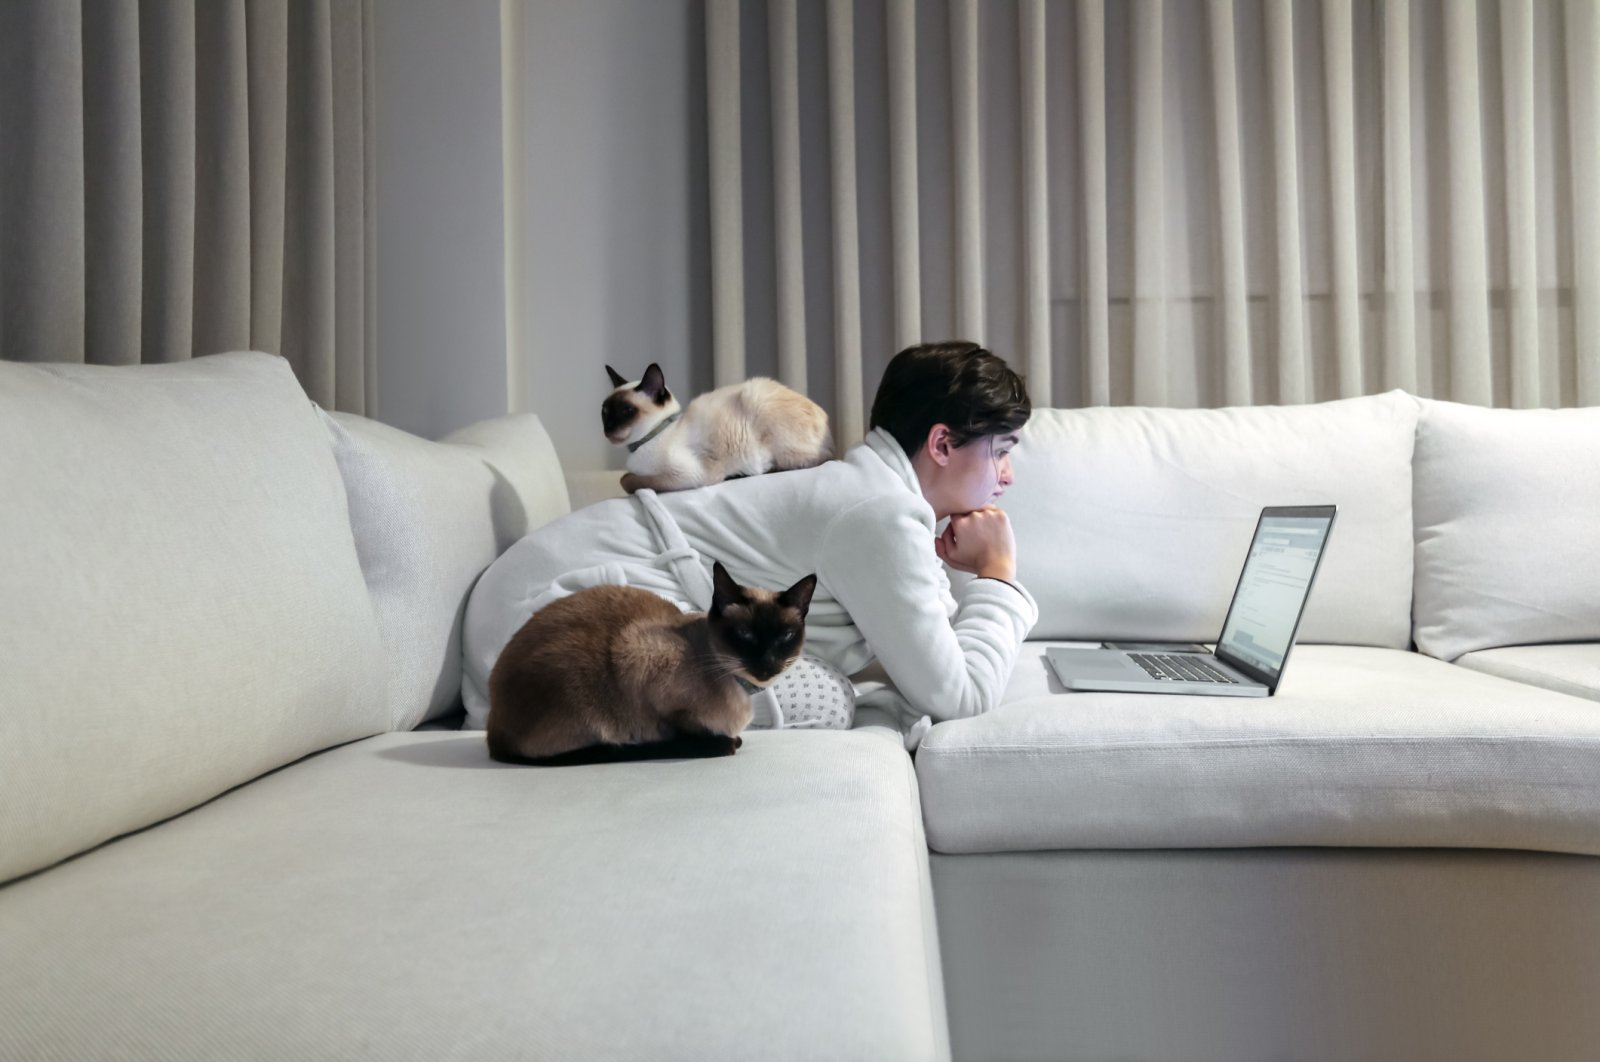 With many working from home in an attempt to self-isolate, their cats are taking advantage of the extra attention. (Stock Photo)